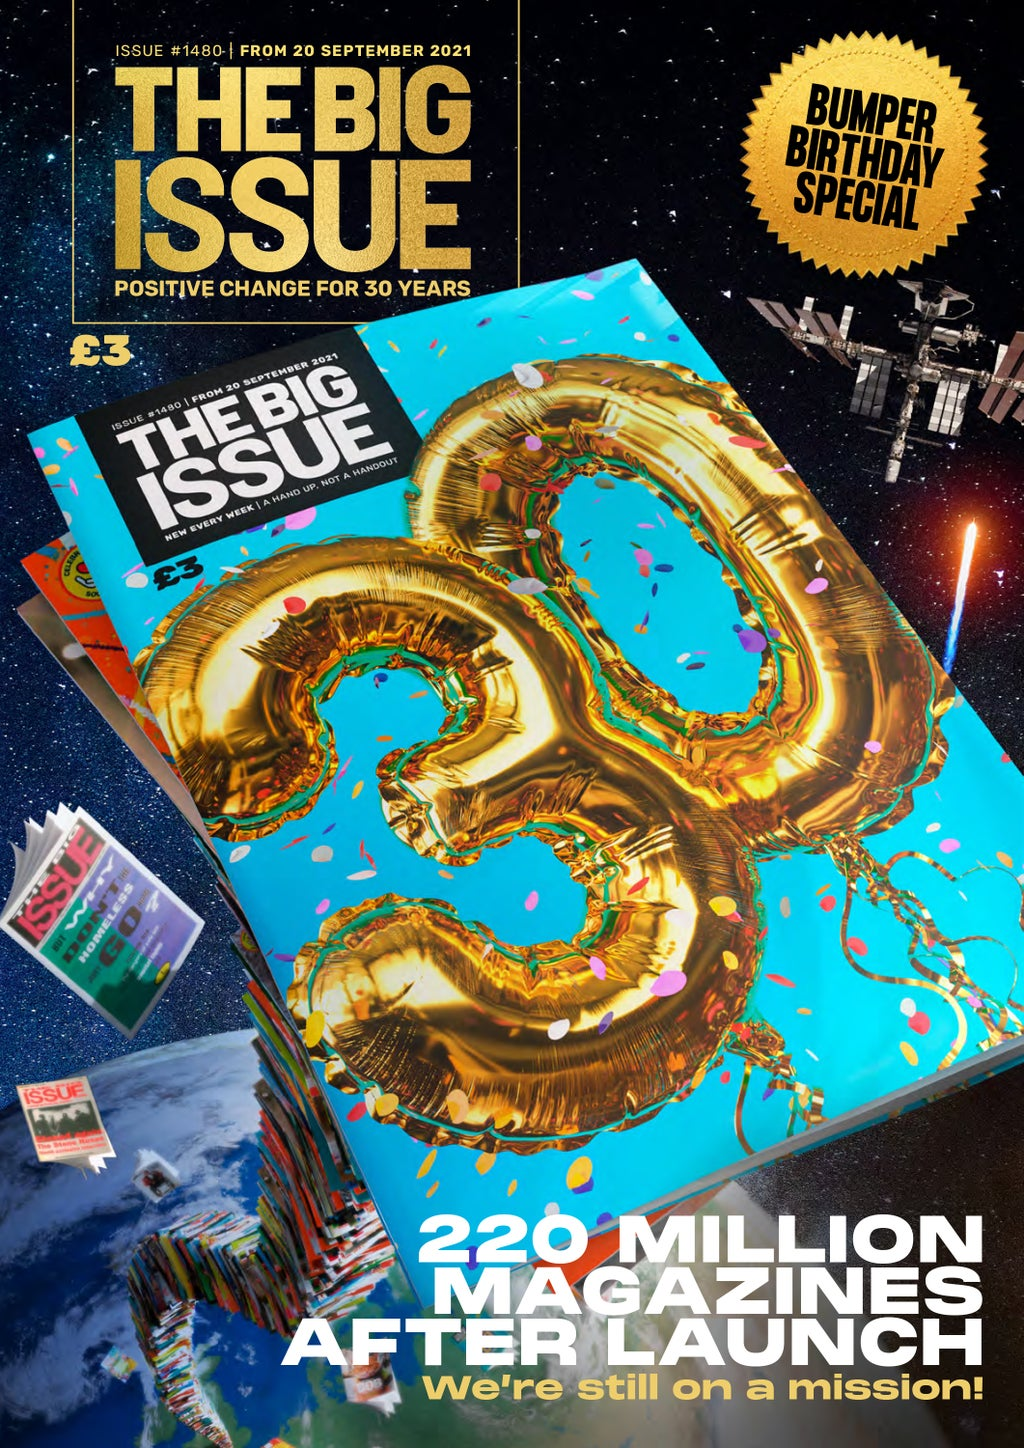 Big Issue marks 30th anniversary with new campaign against homelessness